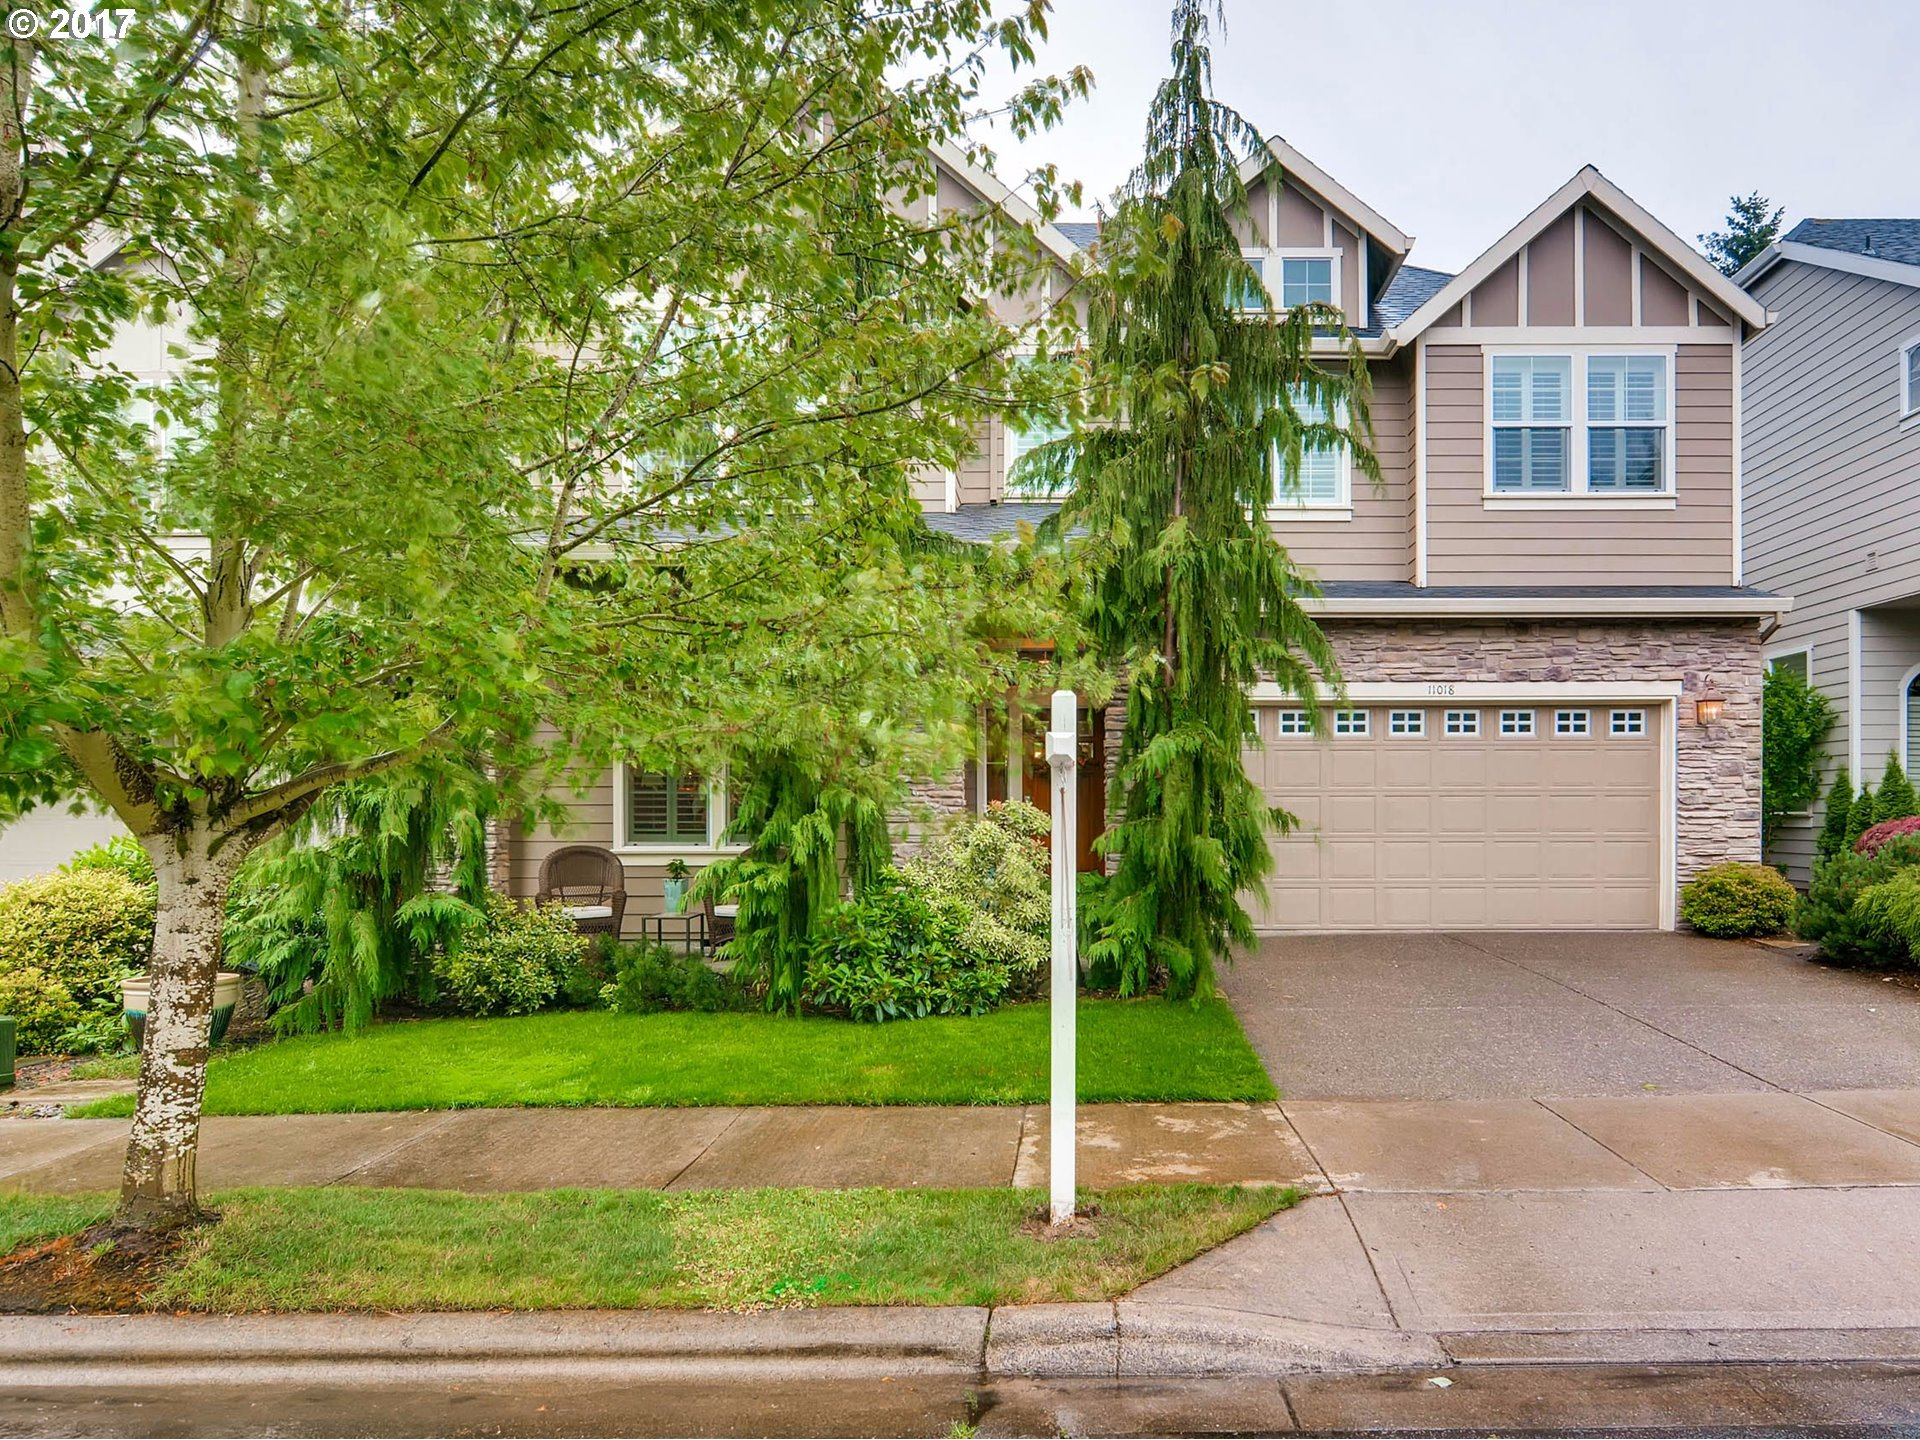 3177 sq. ft 4 bedrooms 2 bathrooms  House For Sale, Portland, OR